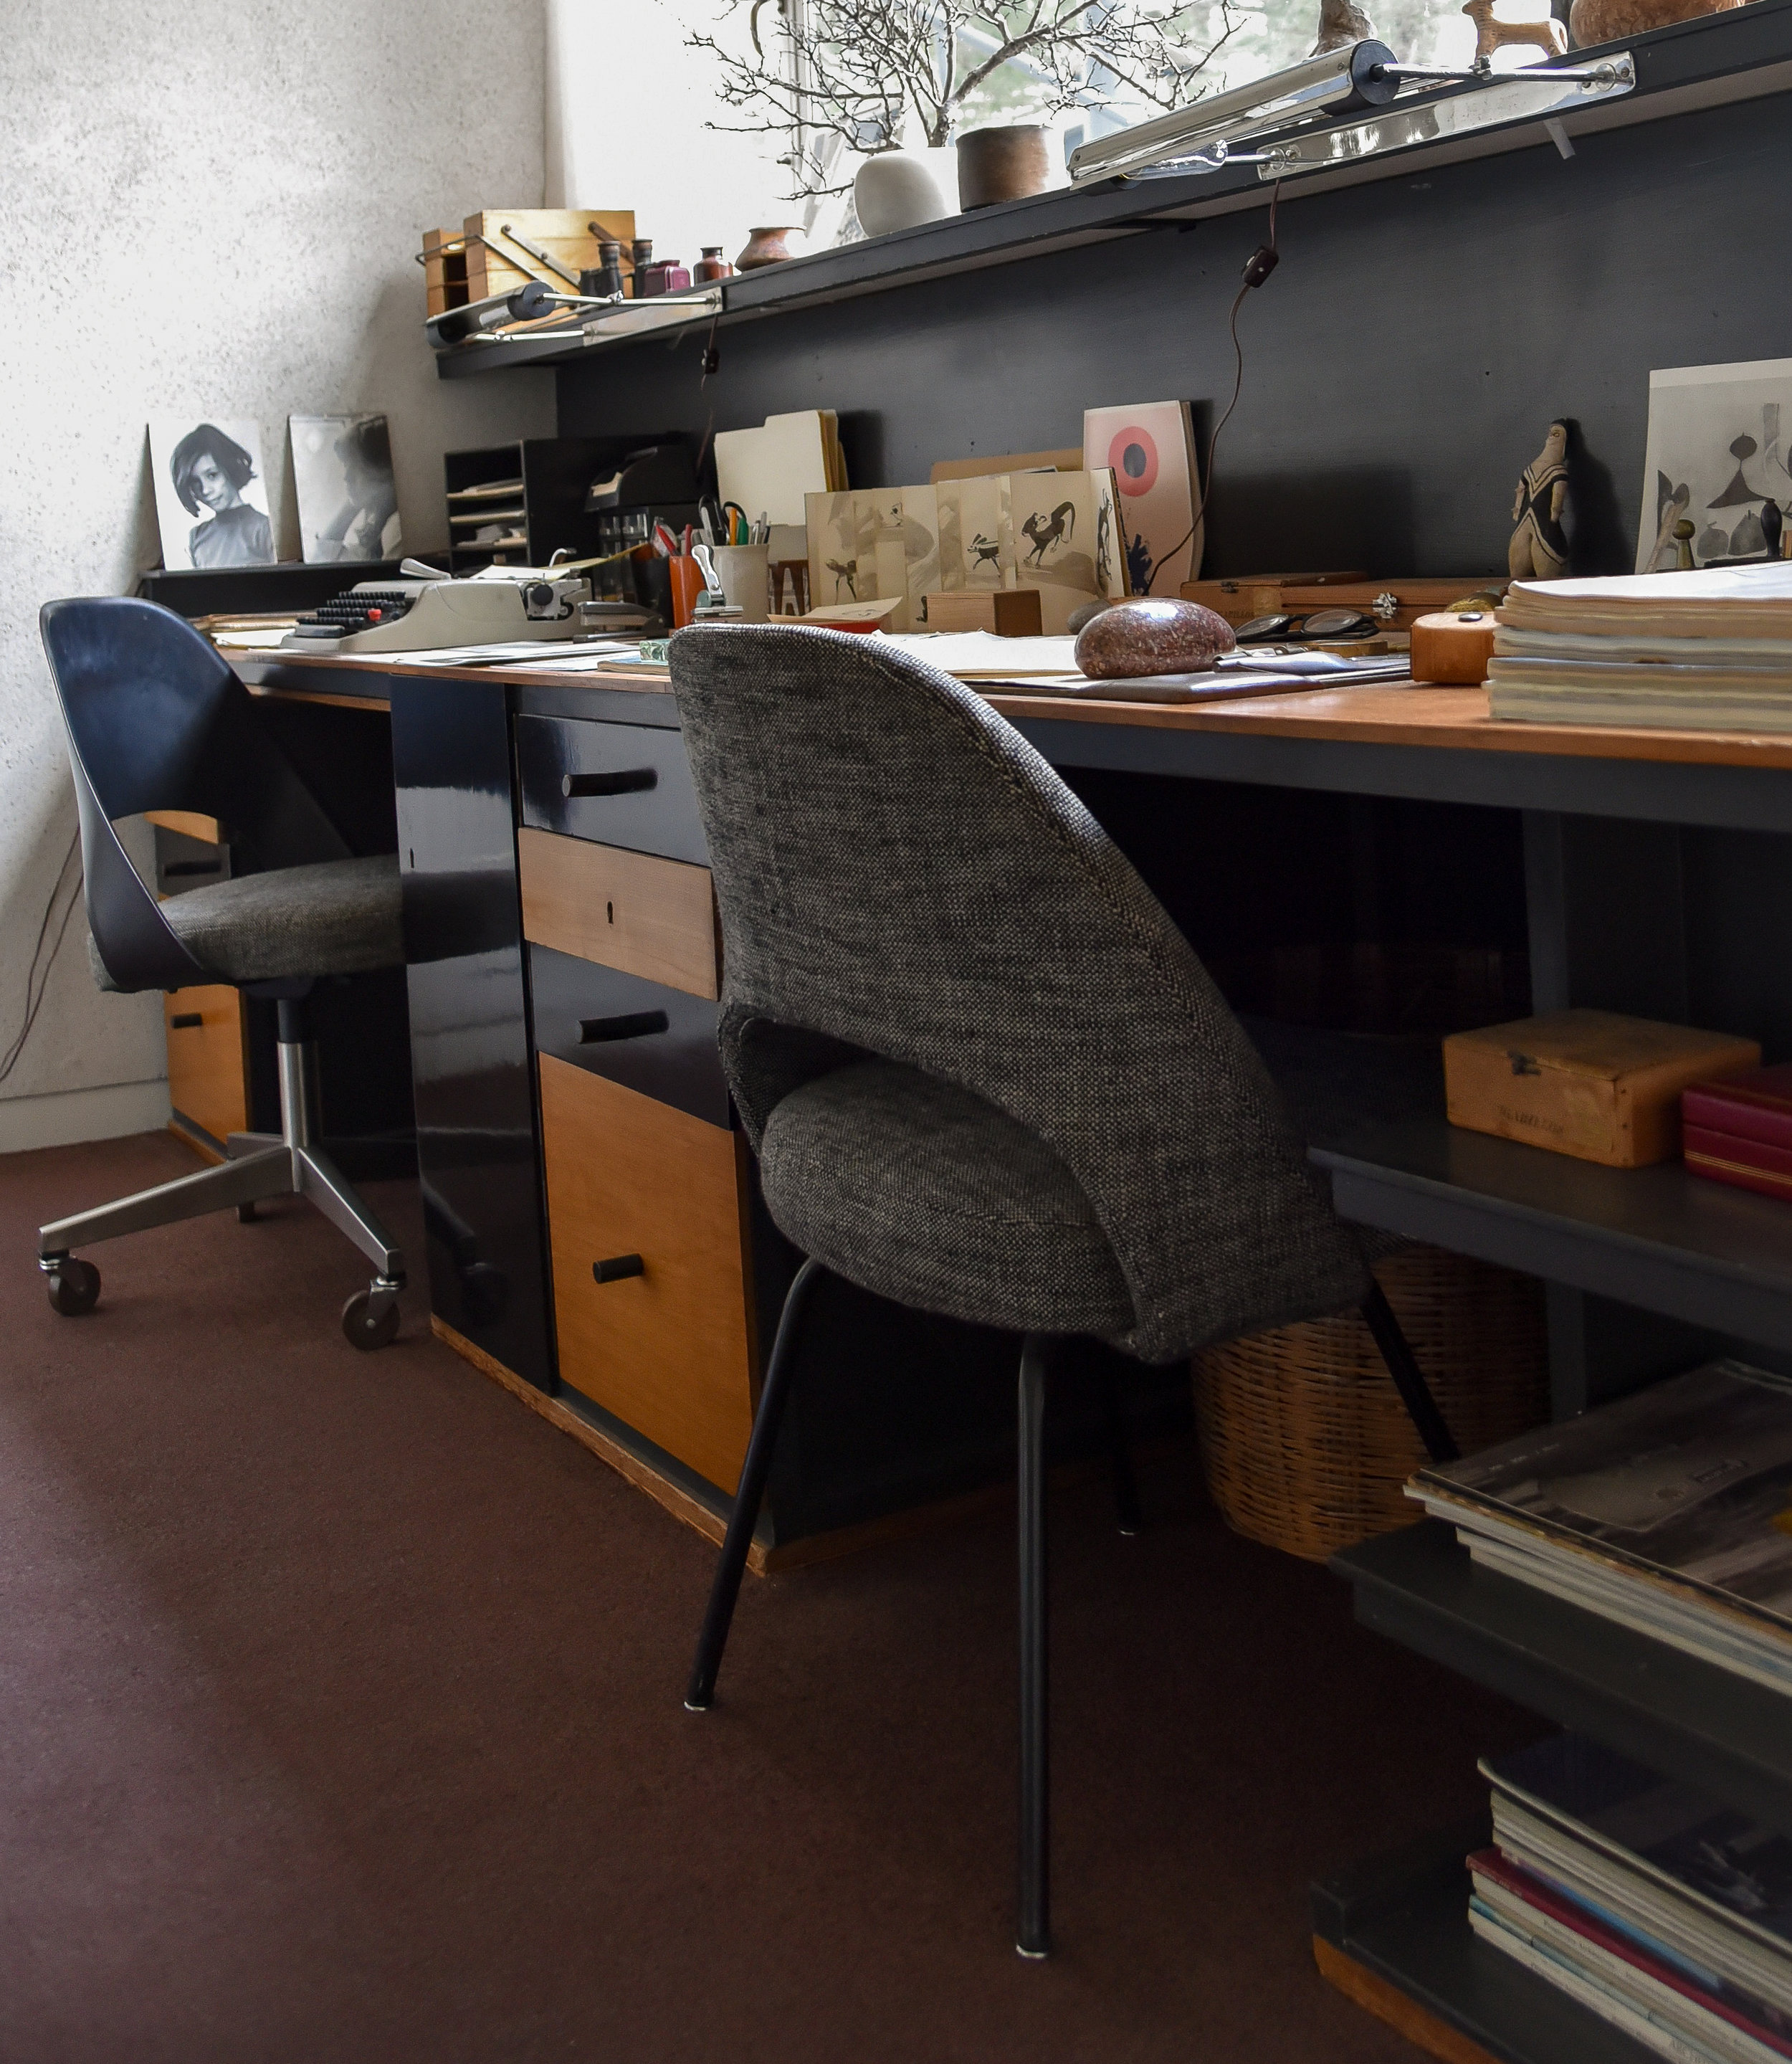 double desk made for the gropius' in the bauhaus workshops in dessau, 1925